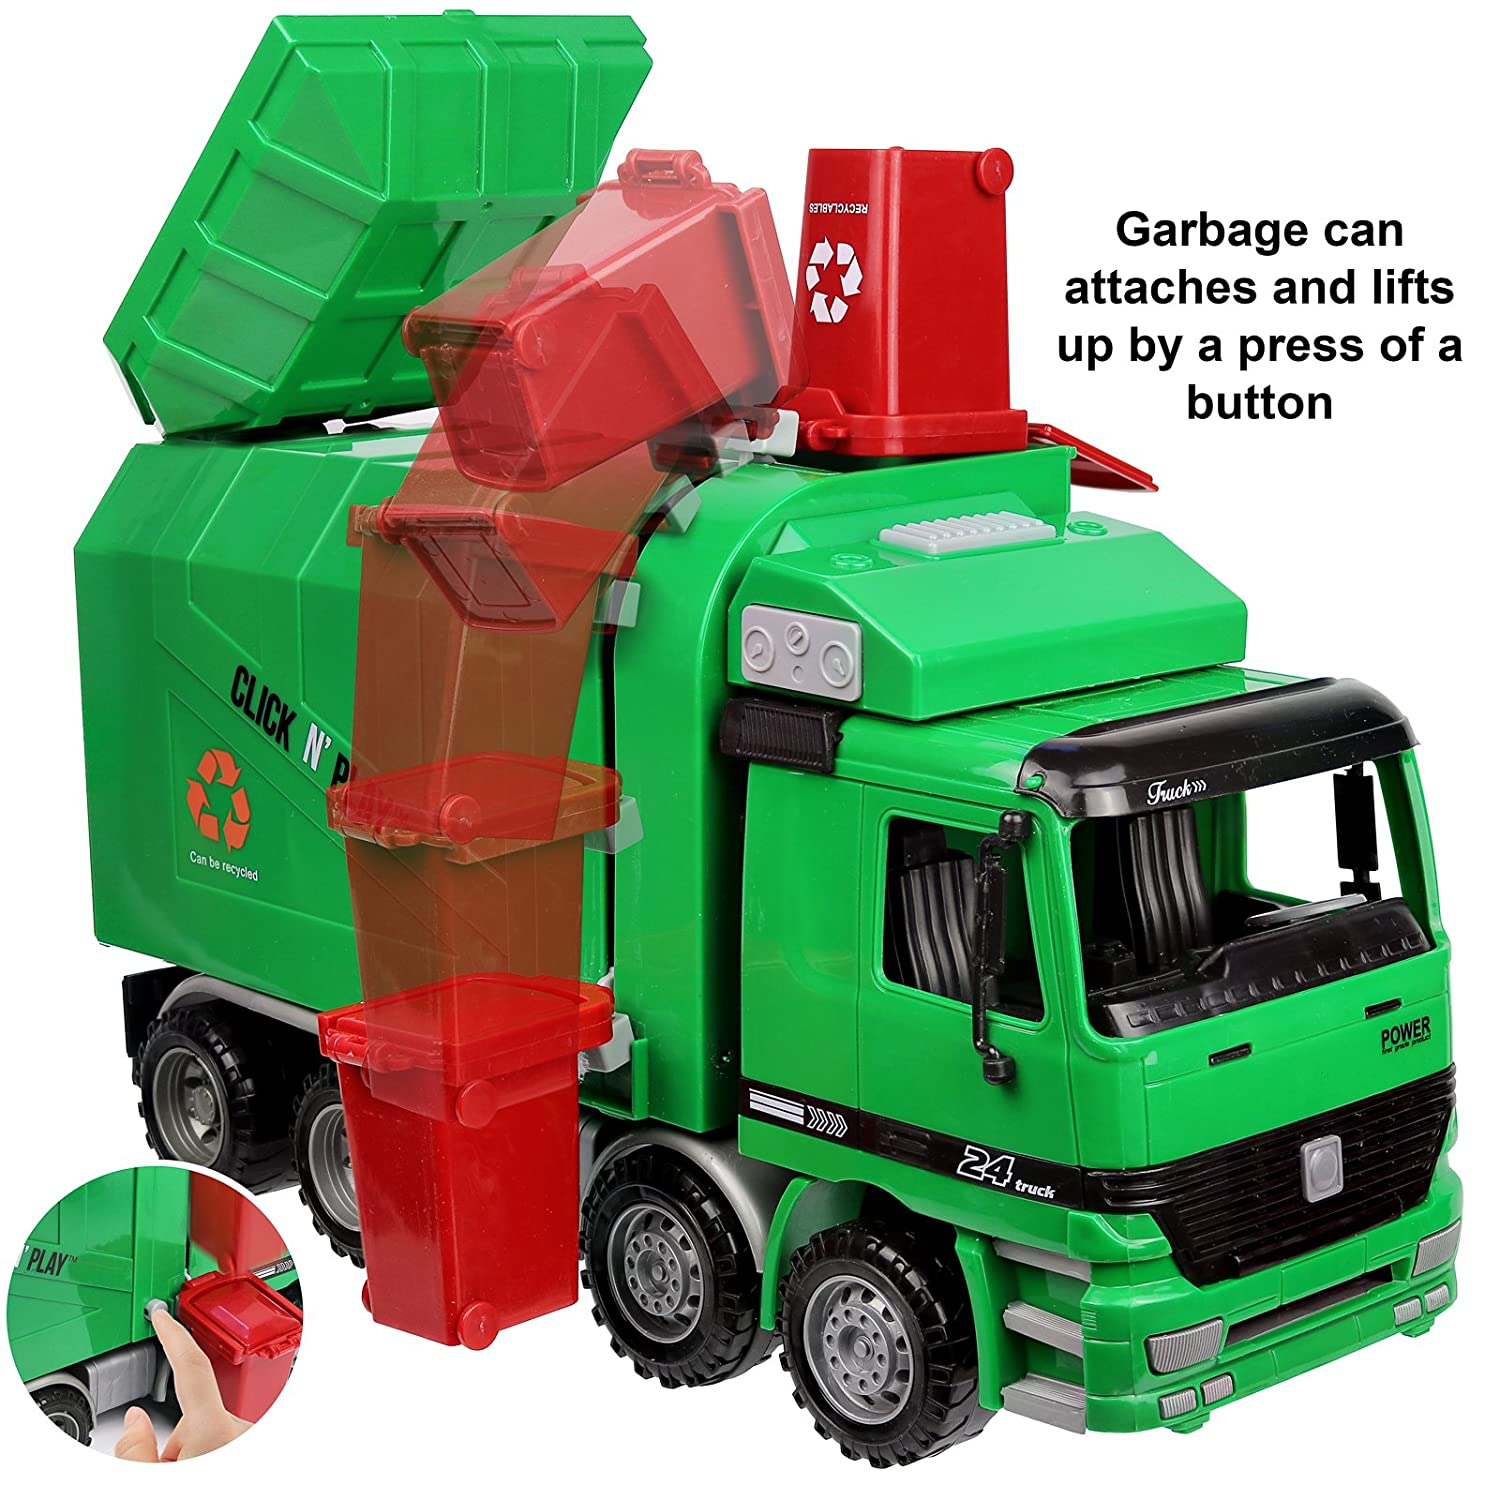 Get ready garbage truck coloring book - Amazon Com Click N Play Friction Powered Garbage Truck Toy With Garbage Cans Vehicle Toys Games